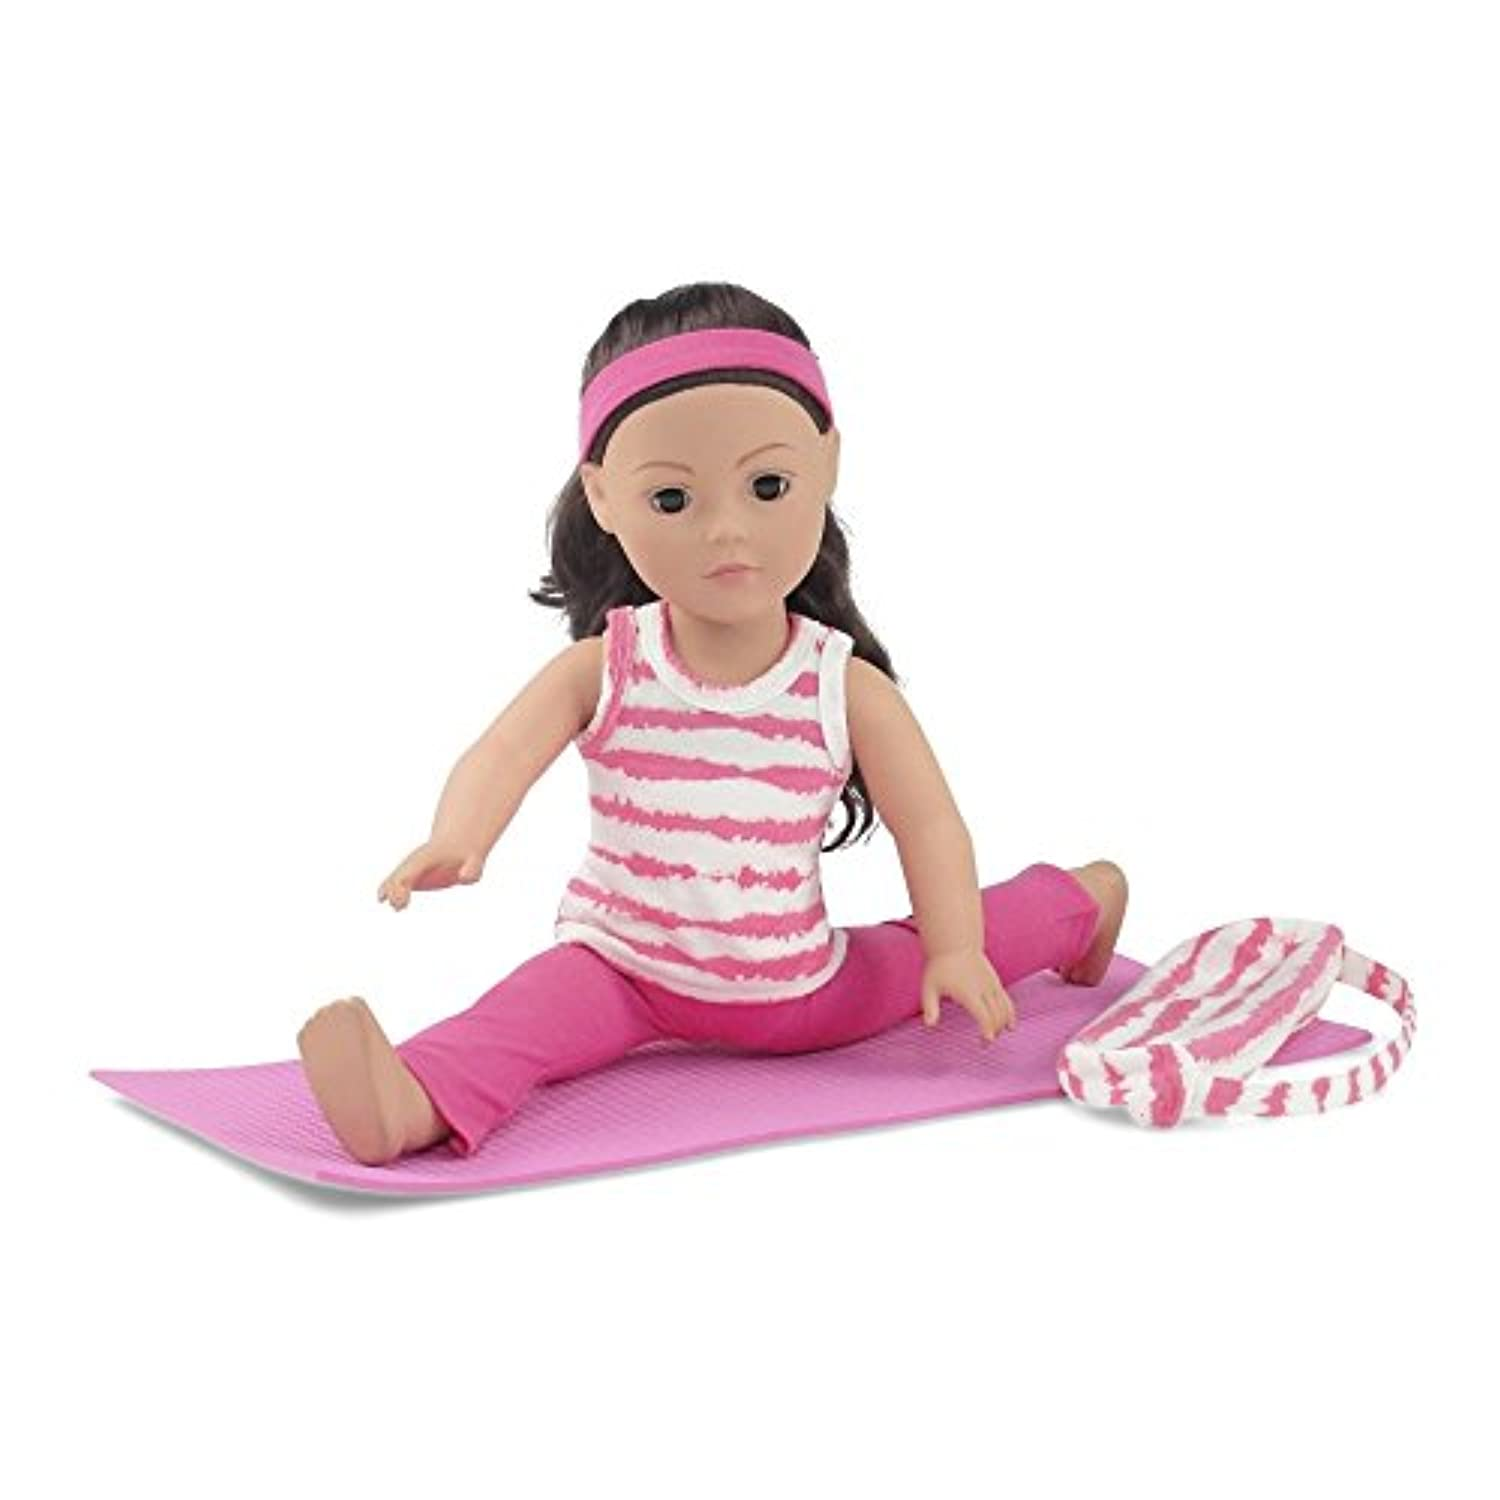 18 Inch Doll Clothes | Pink and White Gymnastics / Yoga Exercise Outfit, Includes Flared Yoga Pants, Animal Print